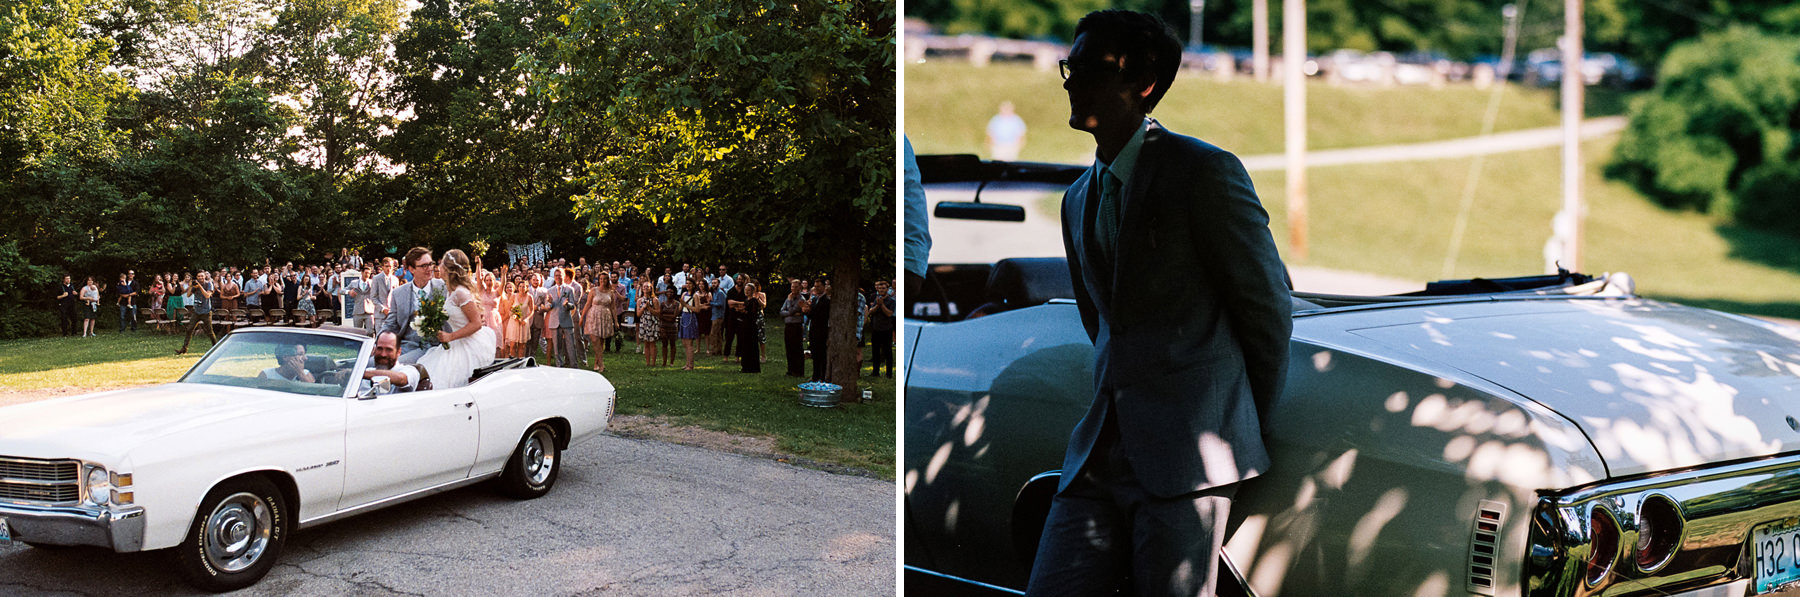 301_James P. Davis Hall Outdoor Wedding on 35mm Film Kansas City, Missouri_Kindling Wedding Photography.JPG